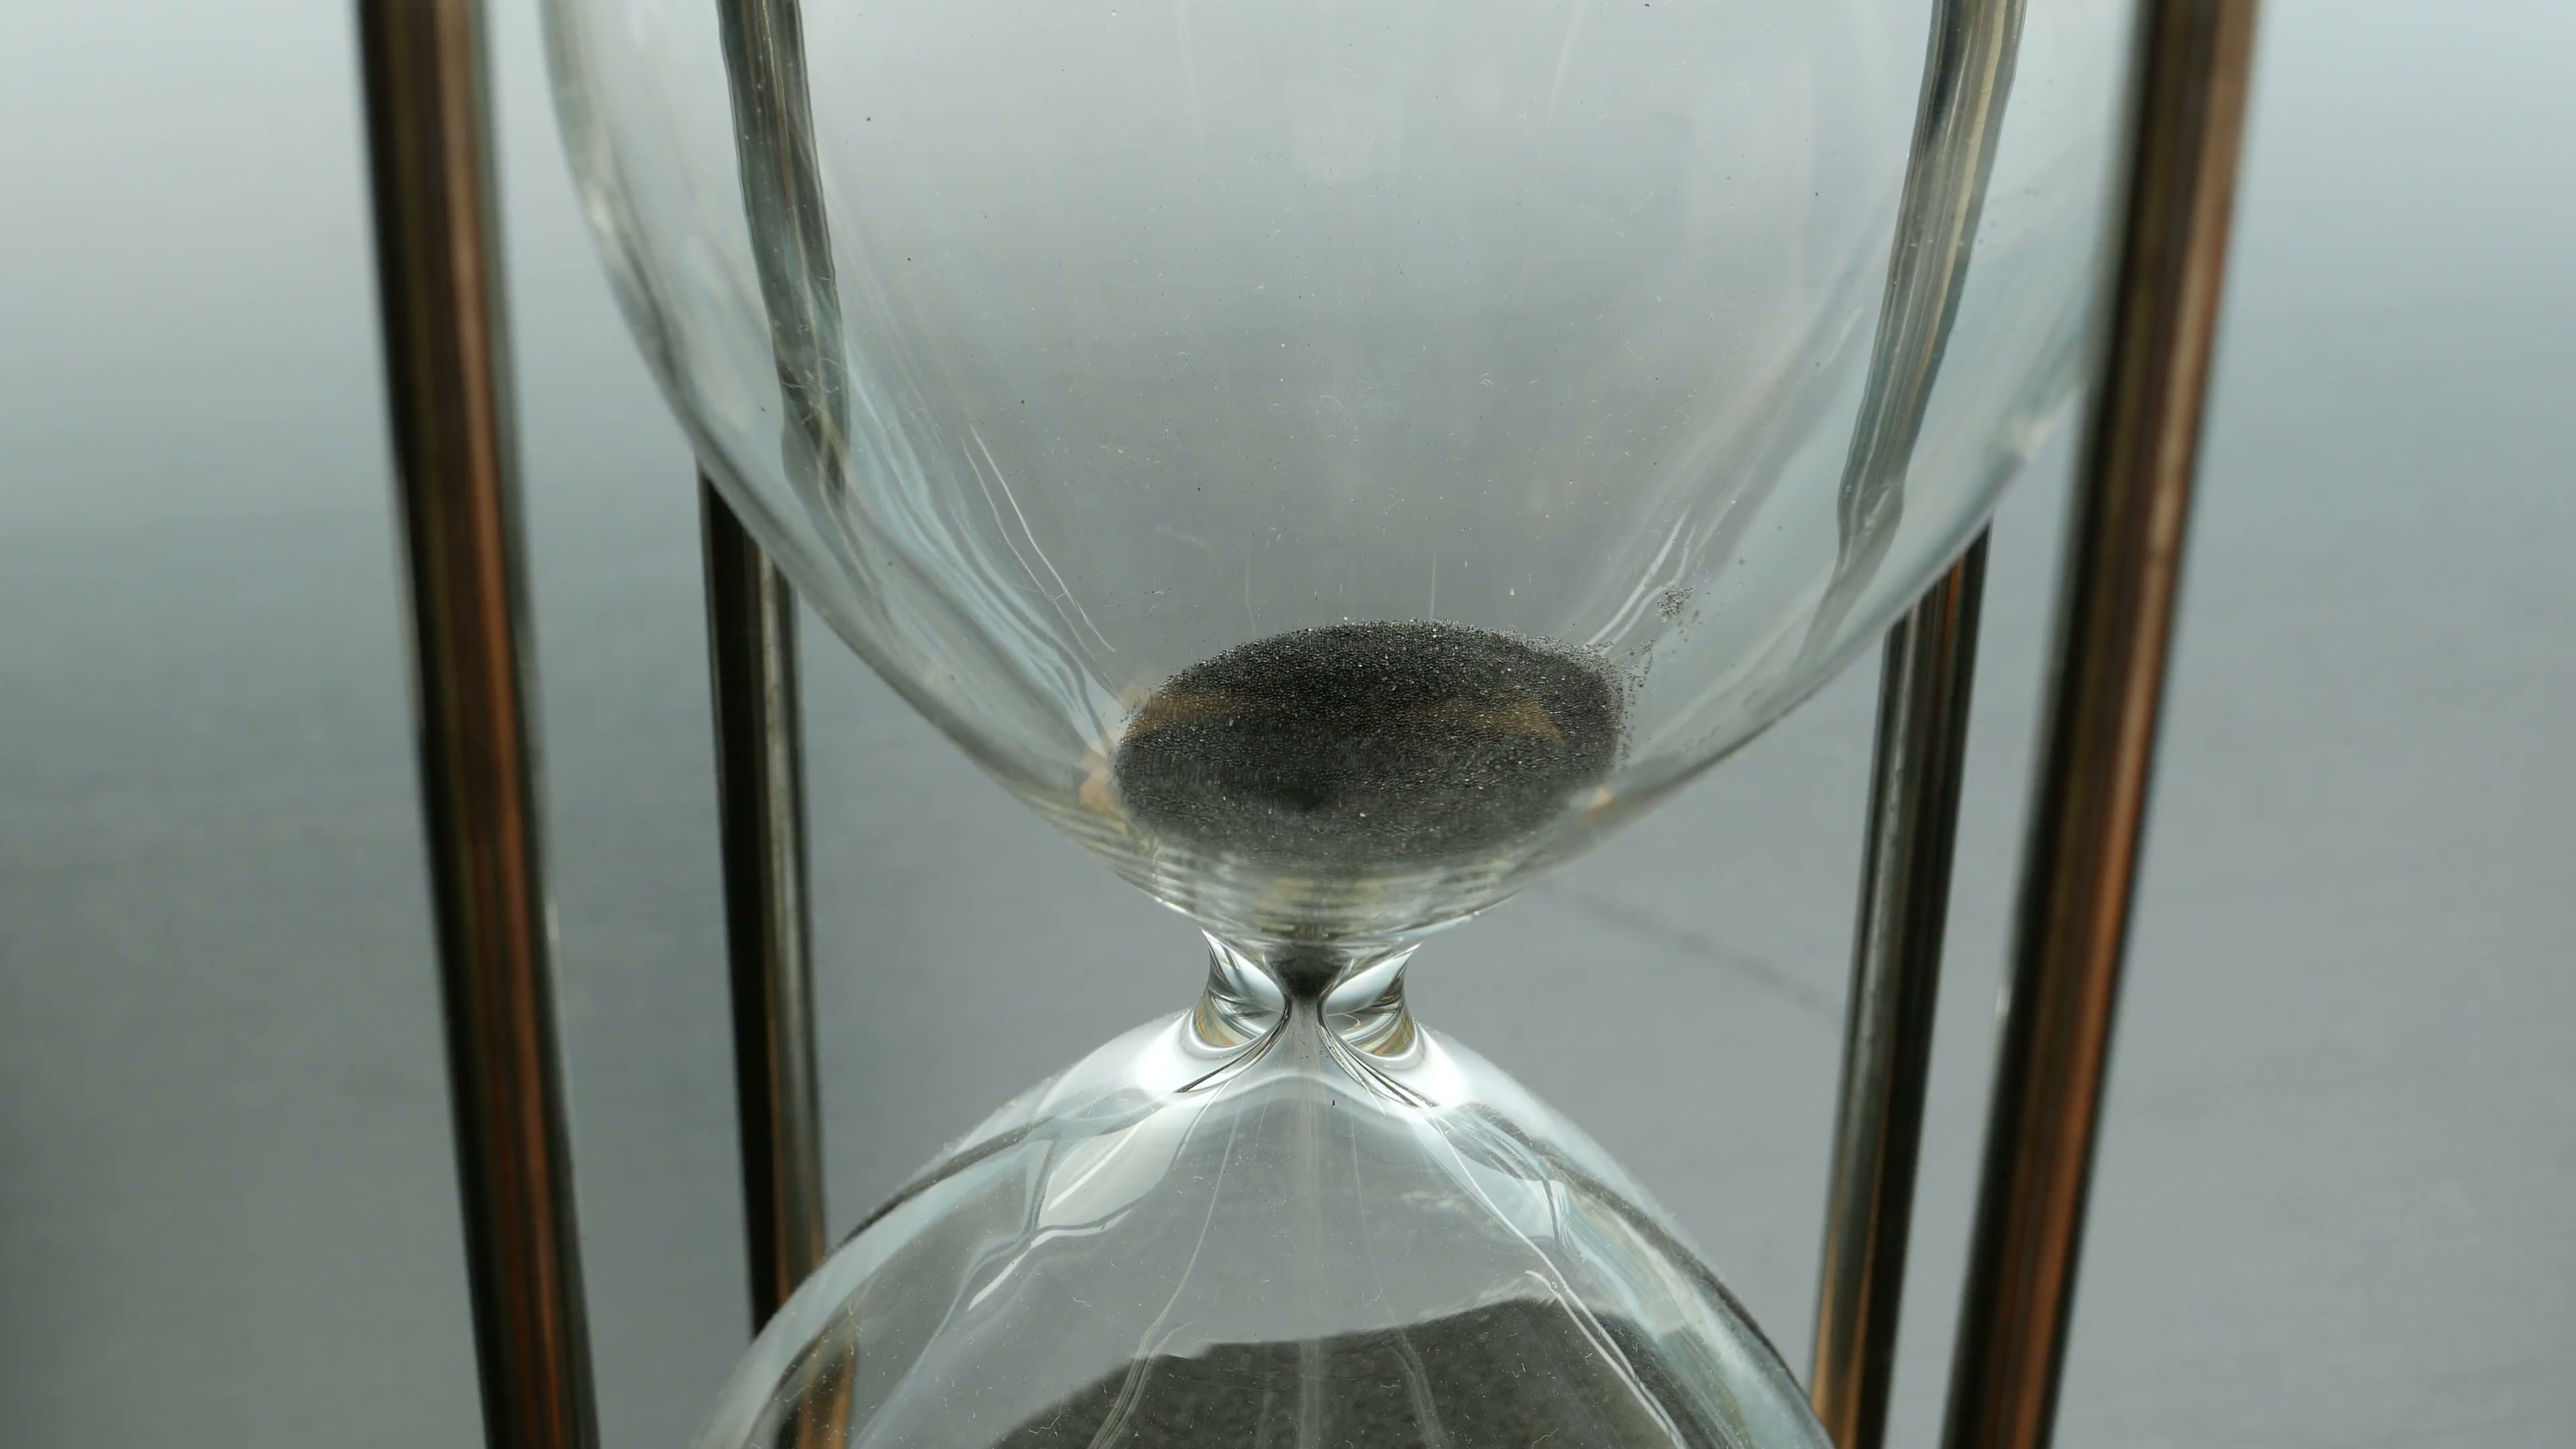 hourglass-black-sand-time-runs-out-the-upper-portion-of-an-hourglass-with-black-sand-time-running-out-concept_ejzawl0t__F0000-3500x1969.png